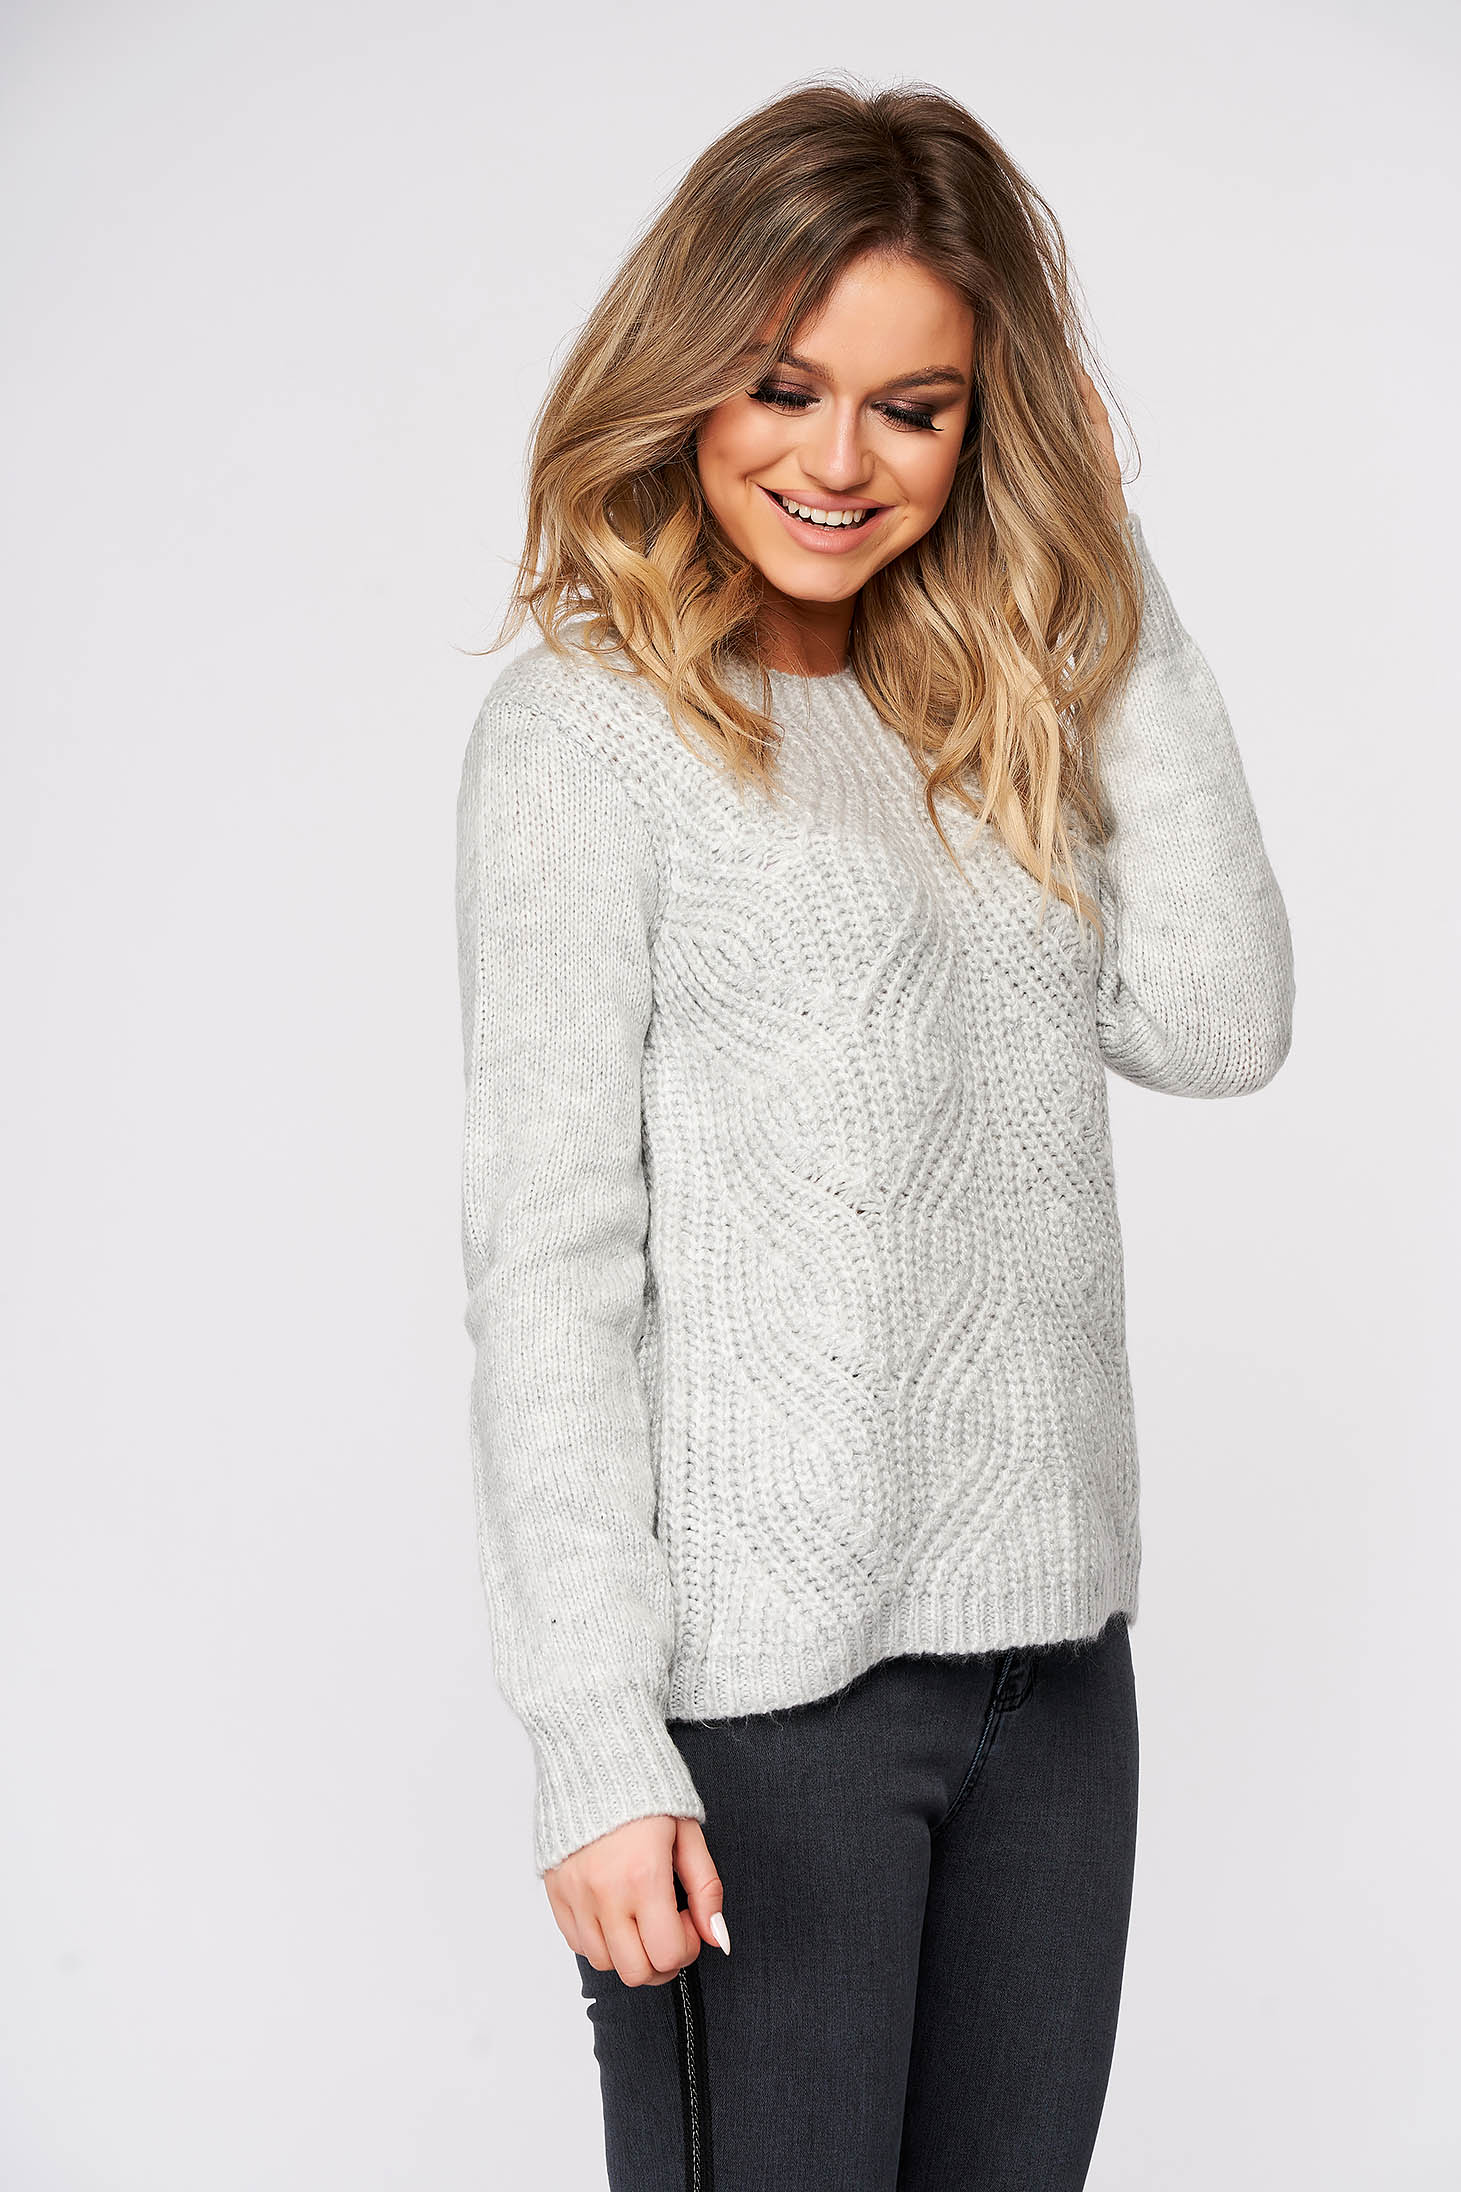 Lightgrey sweater casual flared knitted fabric